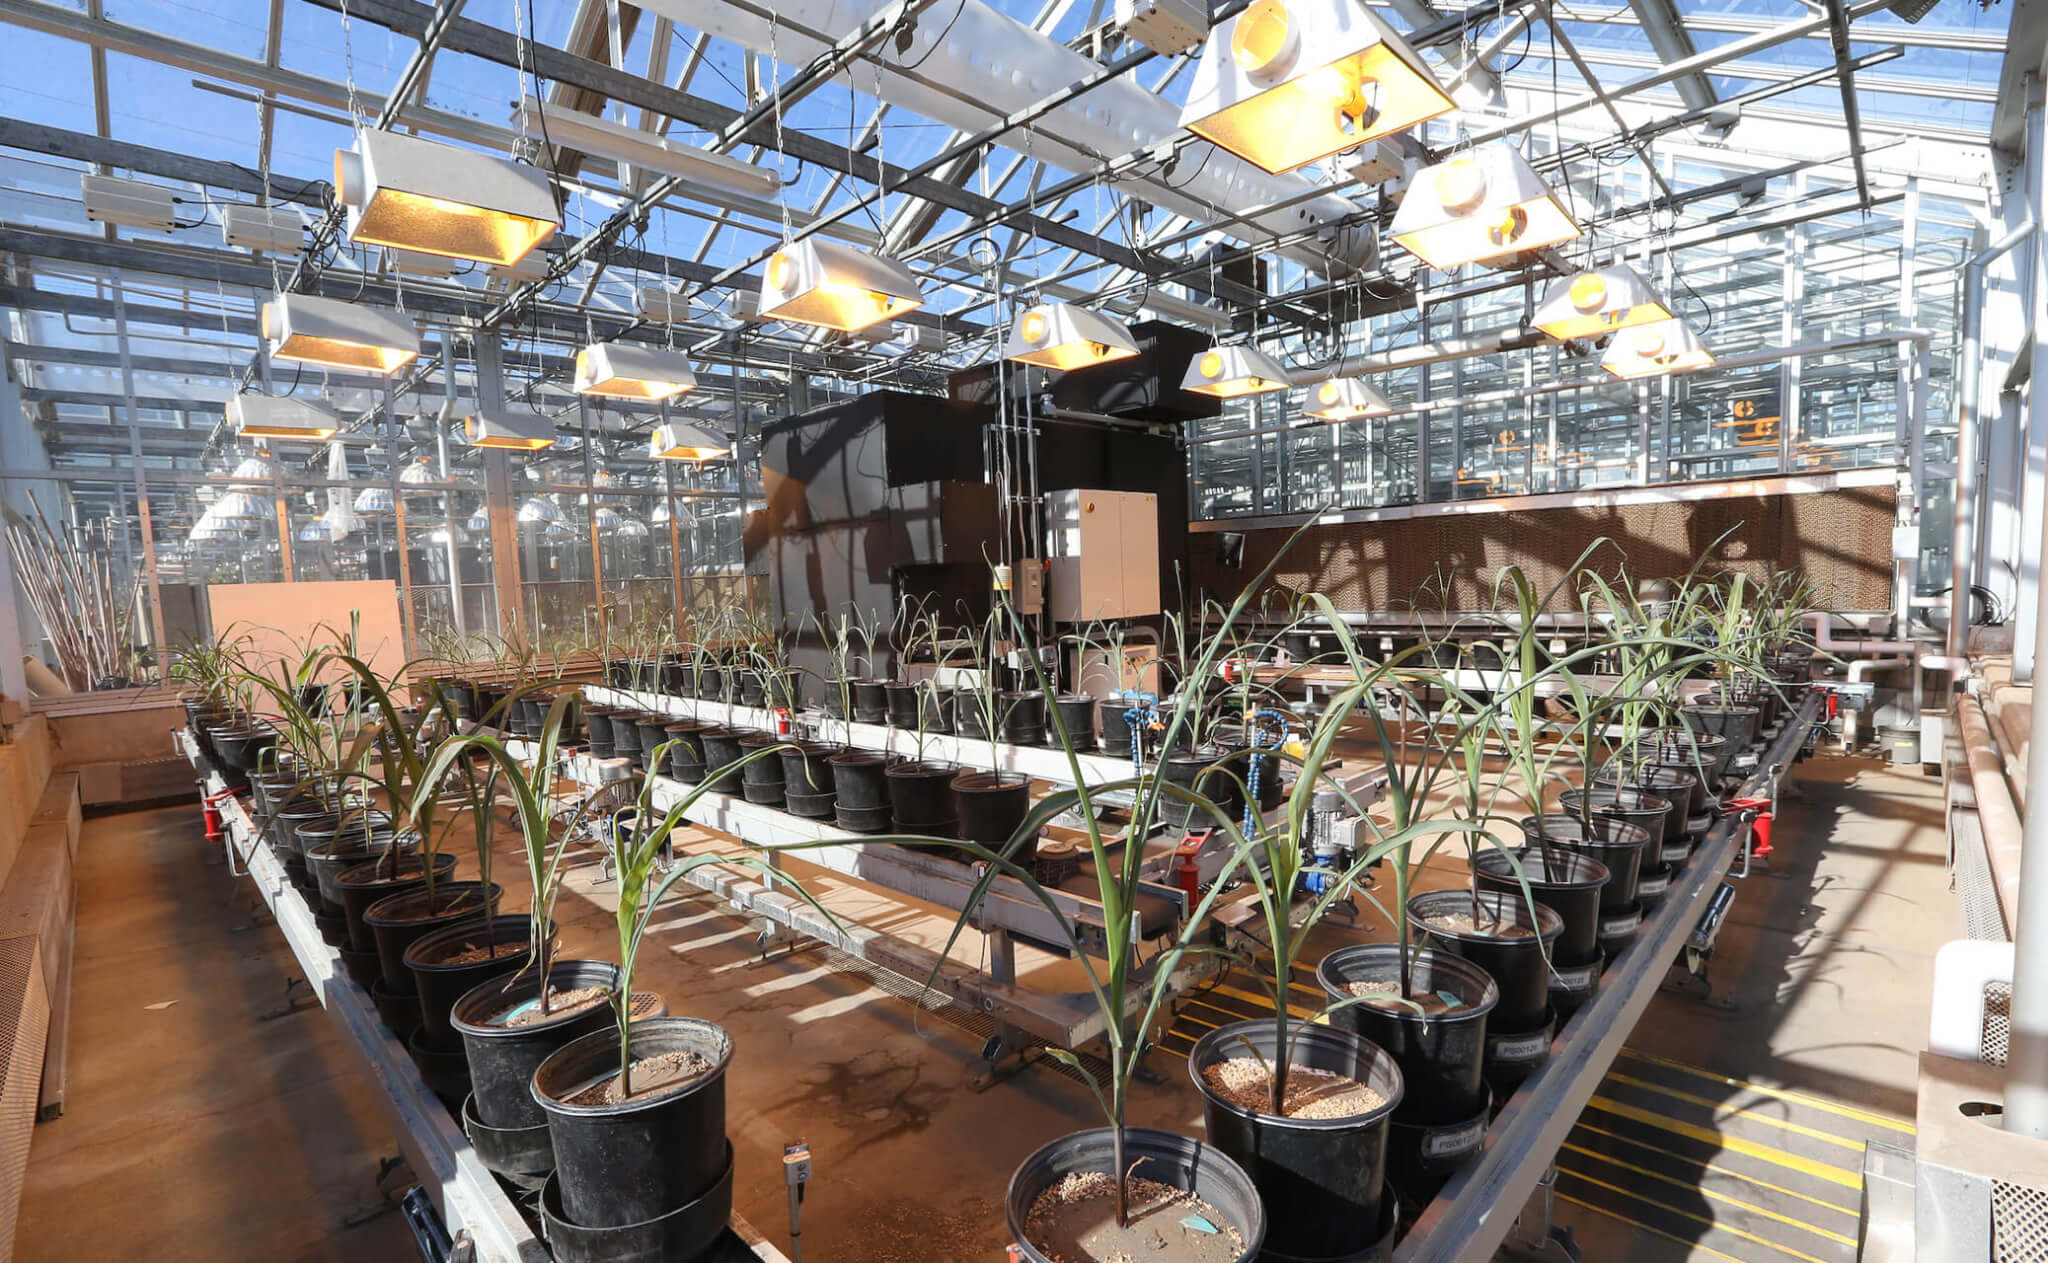 Plants in a phenotyping greenhouse on a conveyor belt